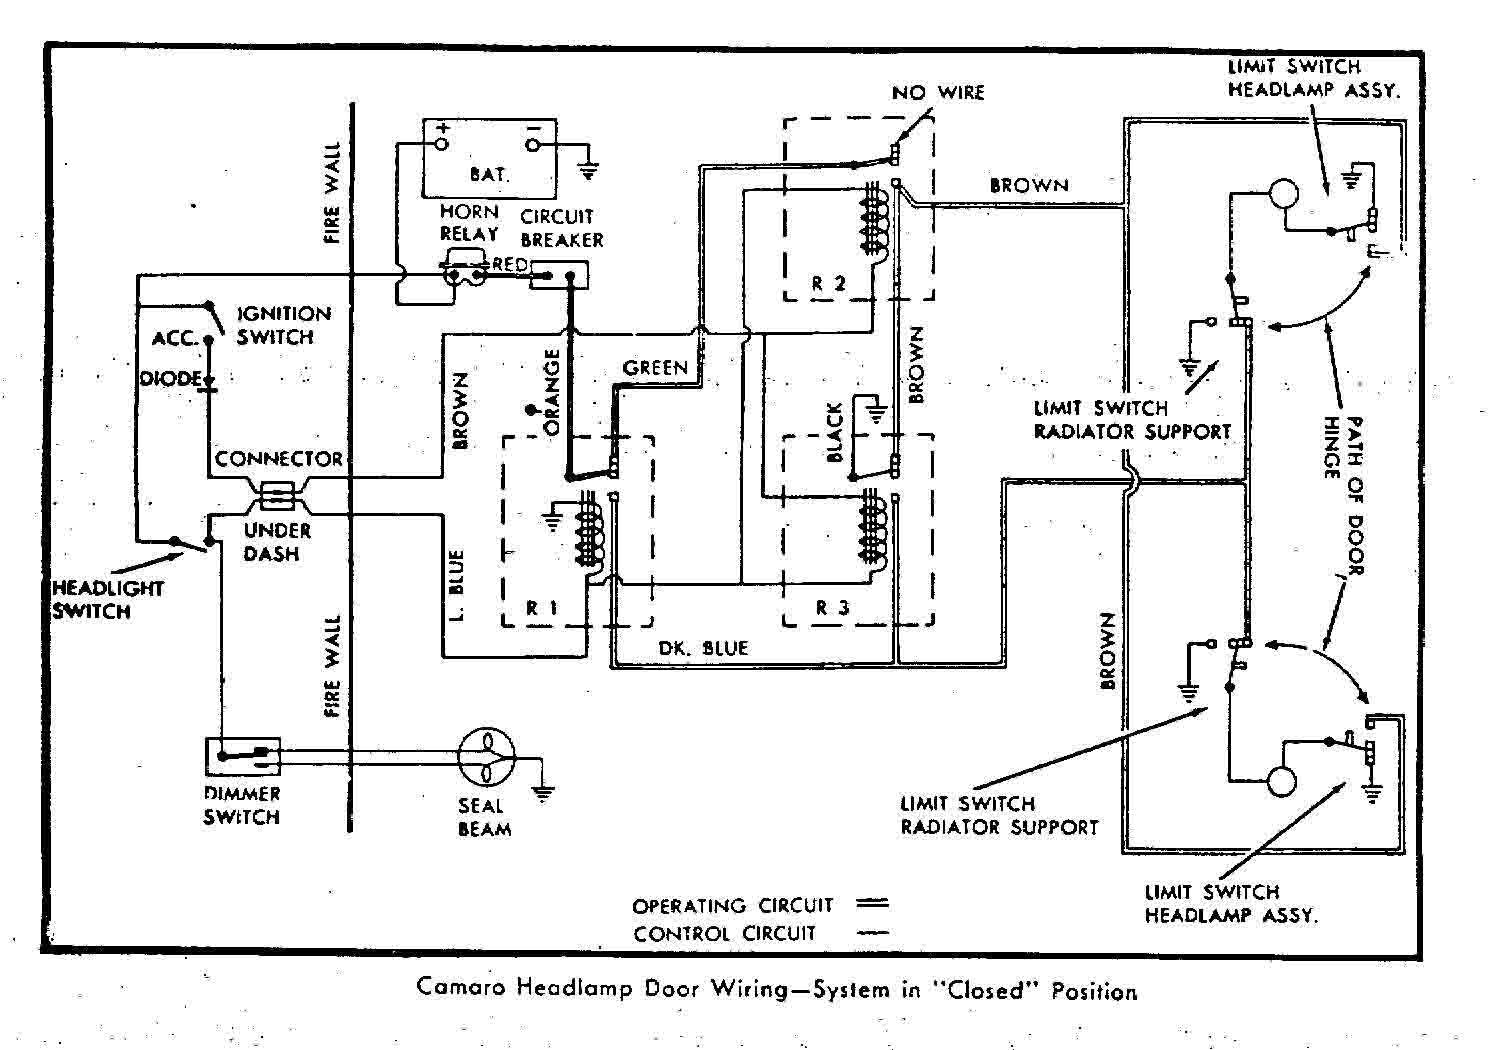 hight resolution of 1968 chevy camaro under dash wiring diagram wiring library 68 corvette ignition wiring diagram 68 corvette dash wiring diagram free download